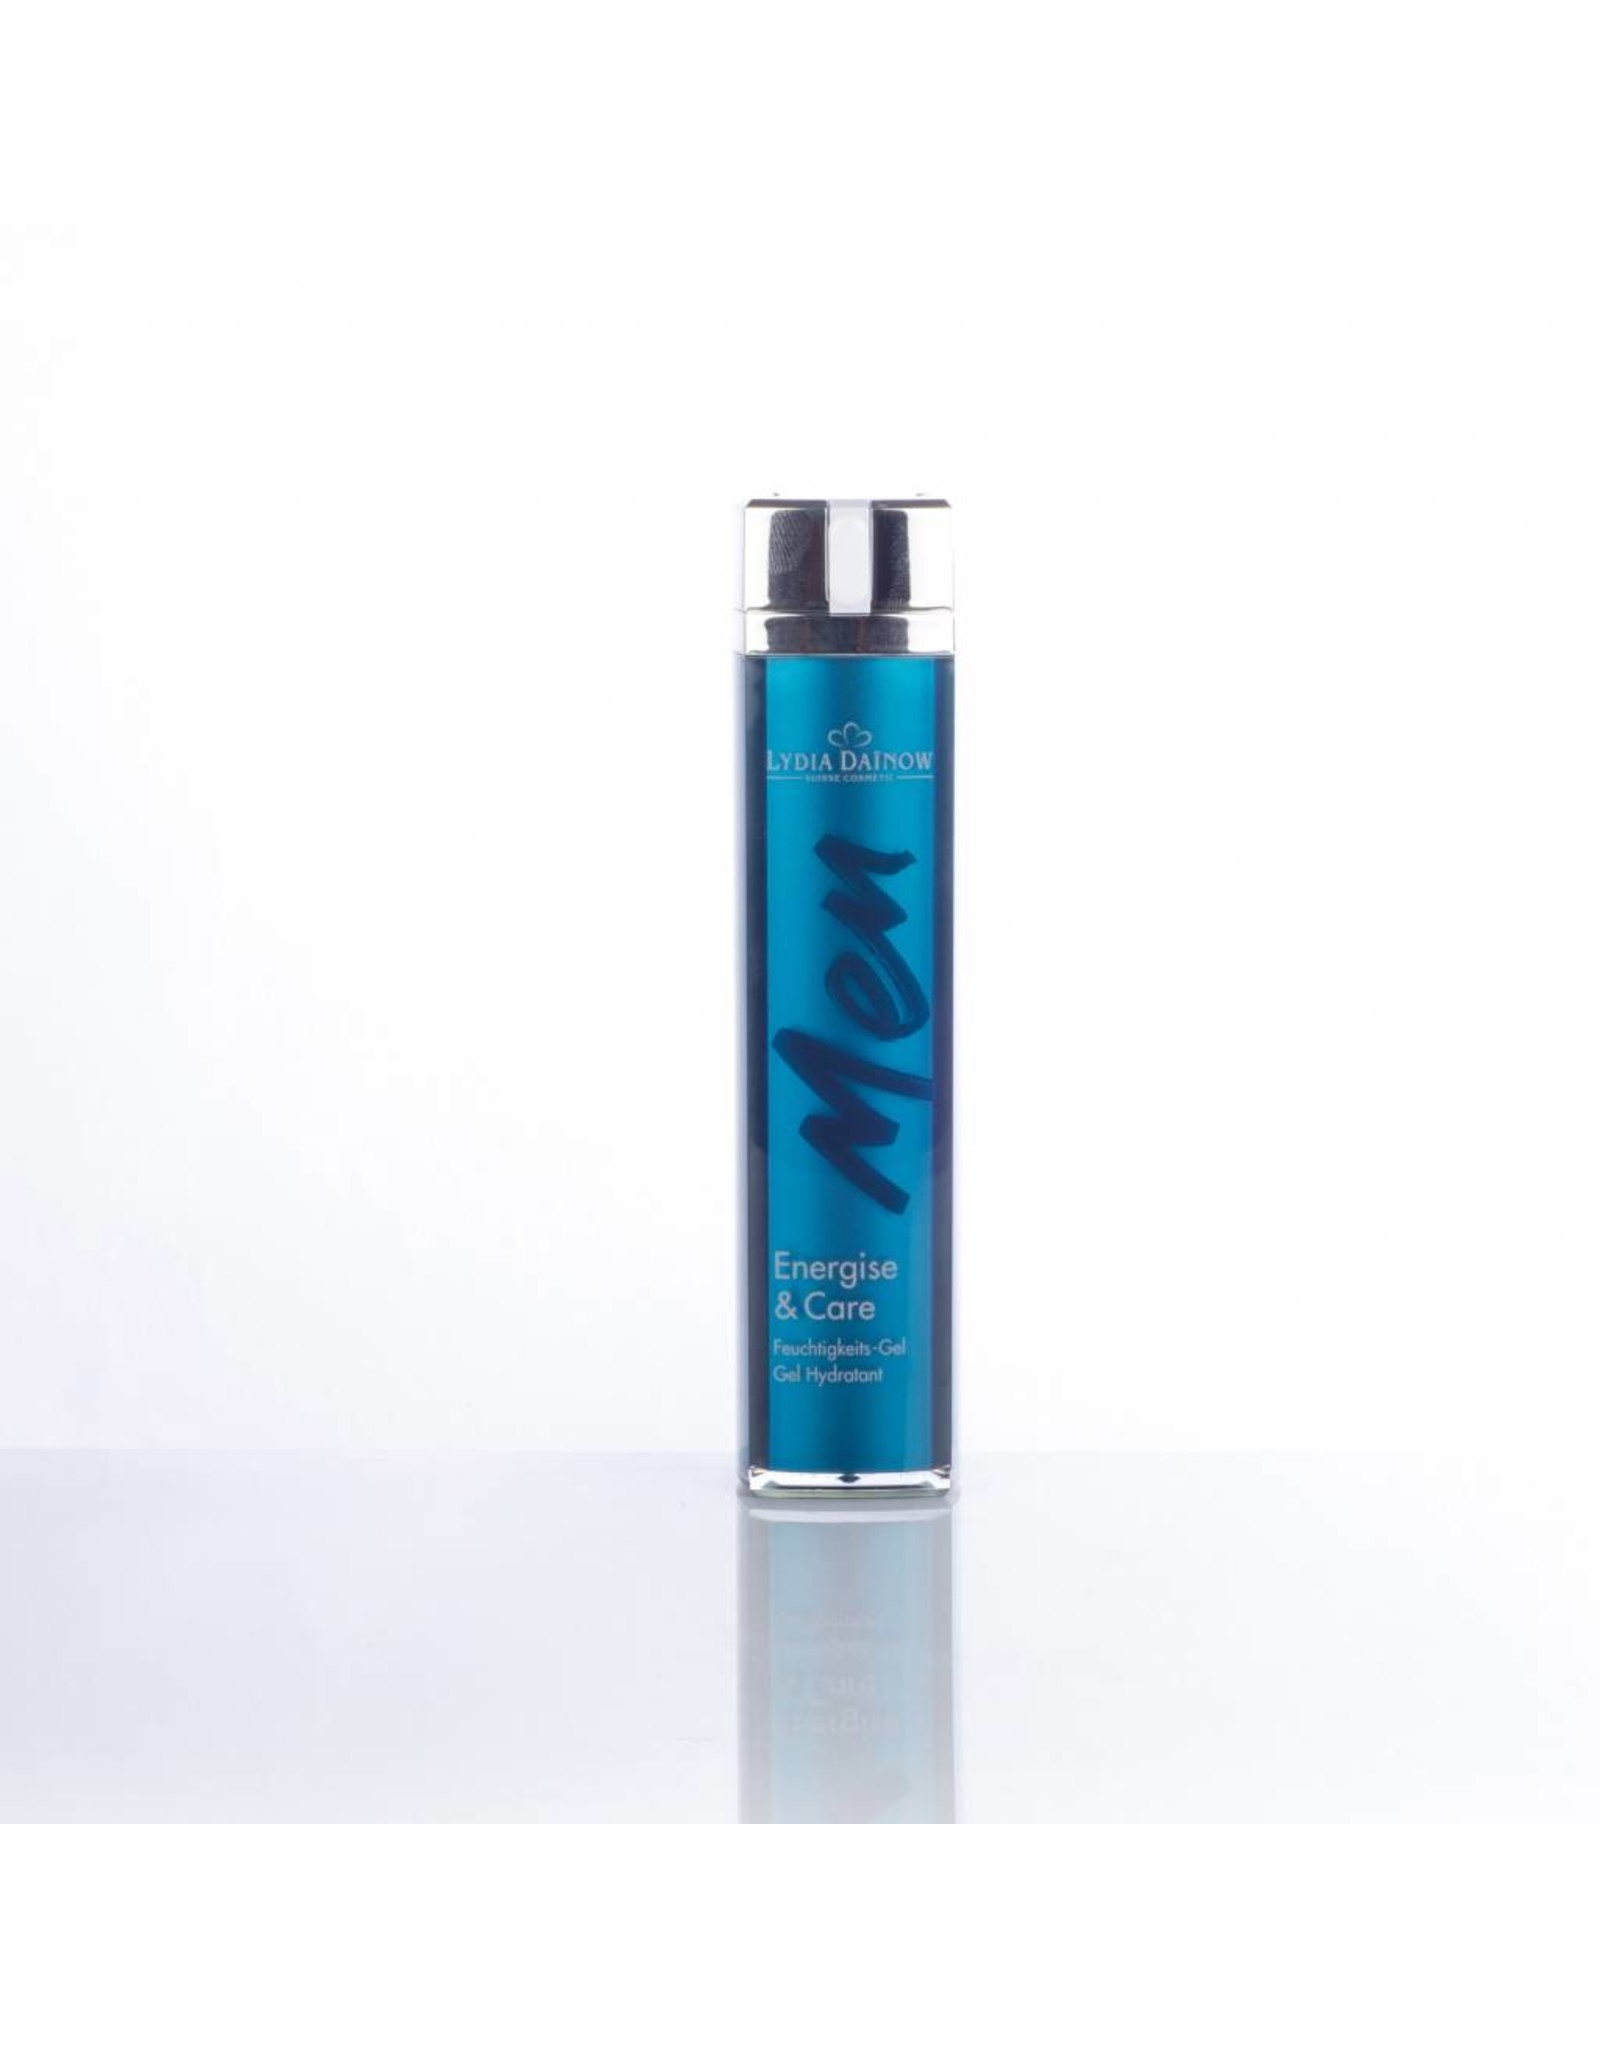 Lydïa Dainow Men - Energise & Care - Gel hydratant